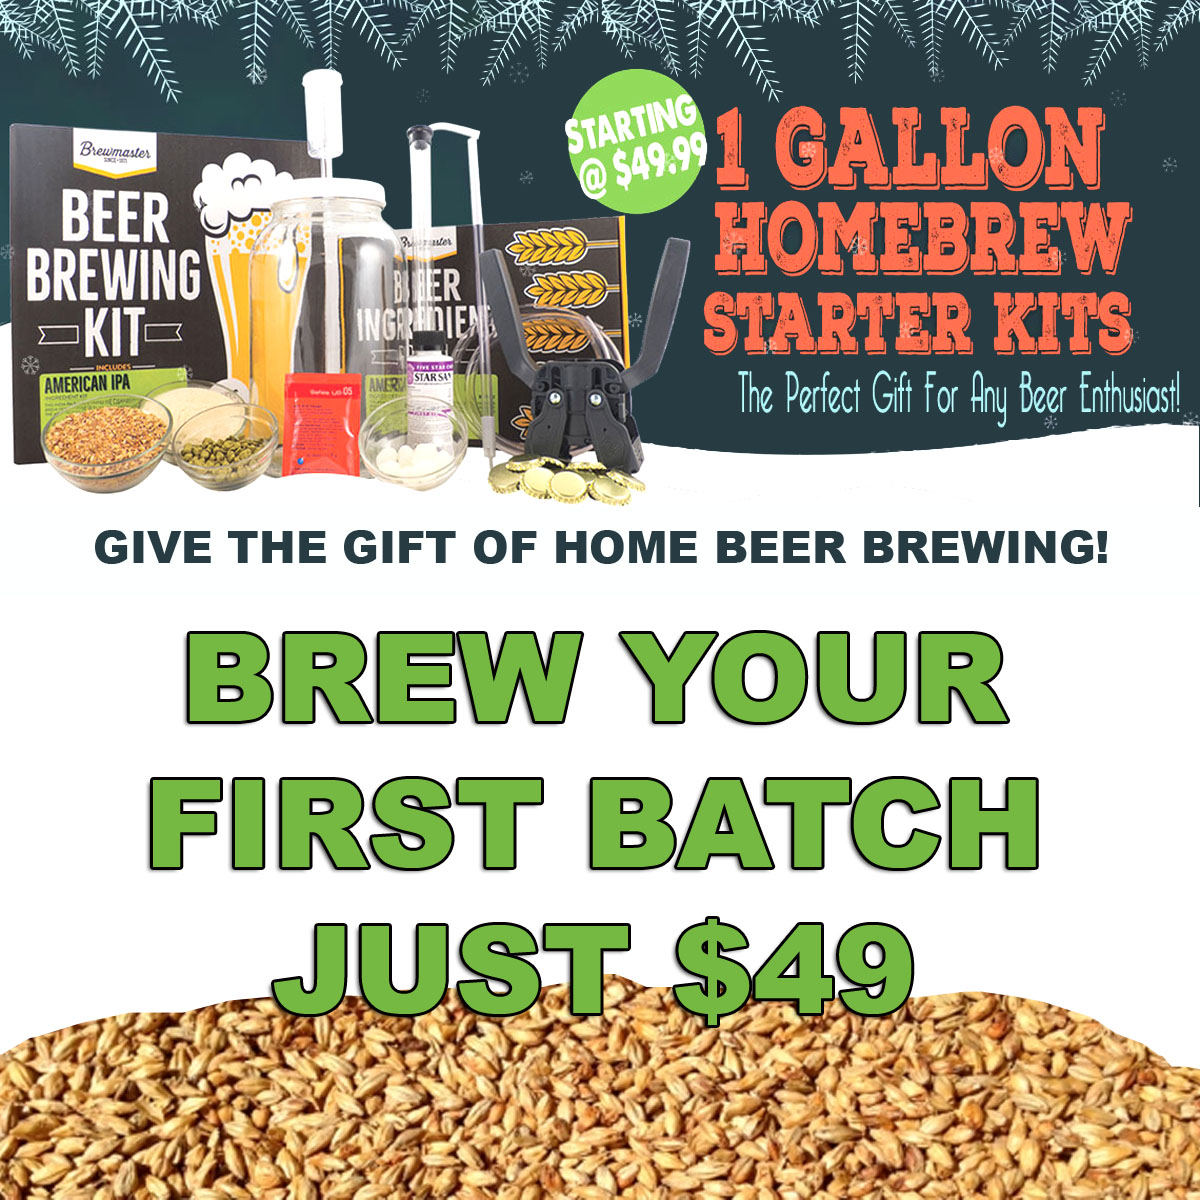 Coupon Code For Home Beer Brewing Kit Just $49 Coupon Code